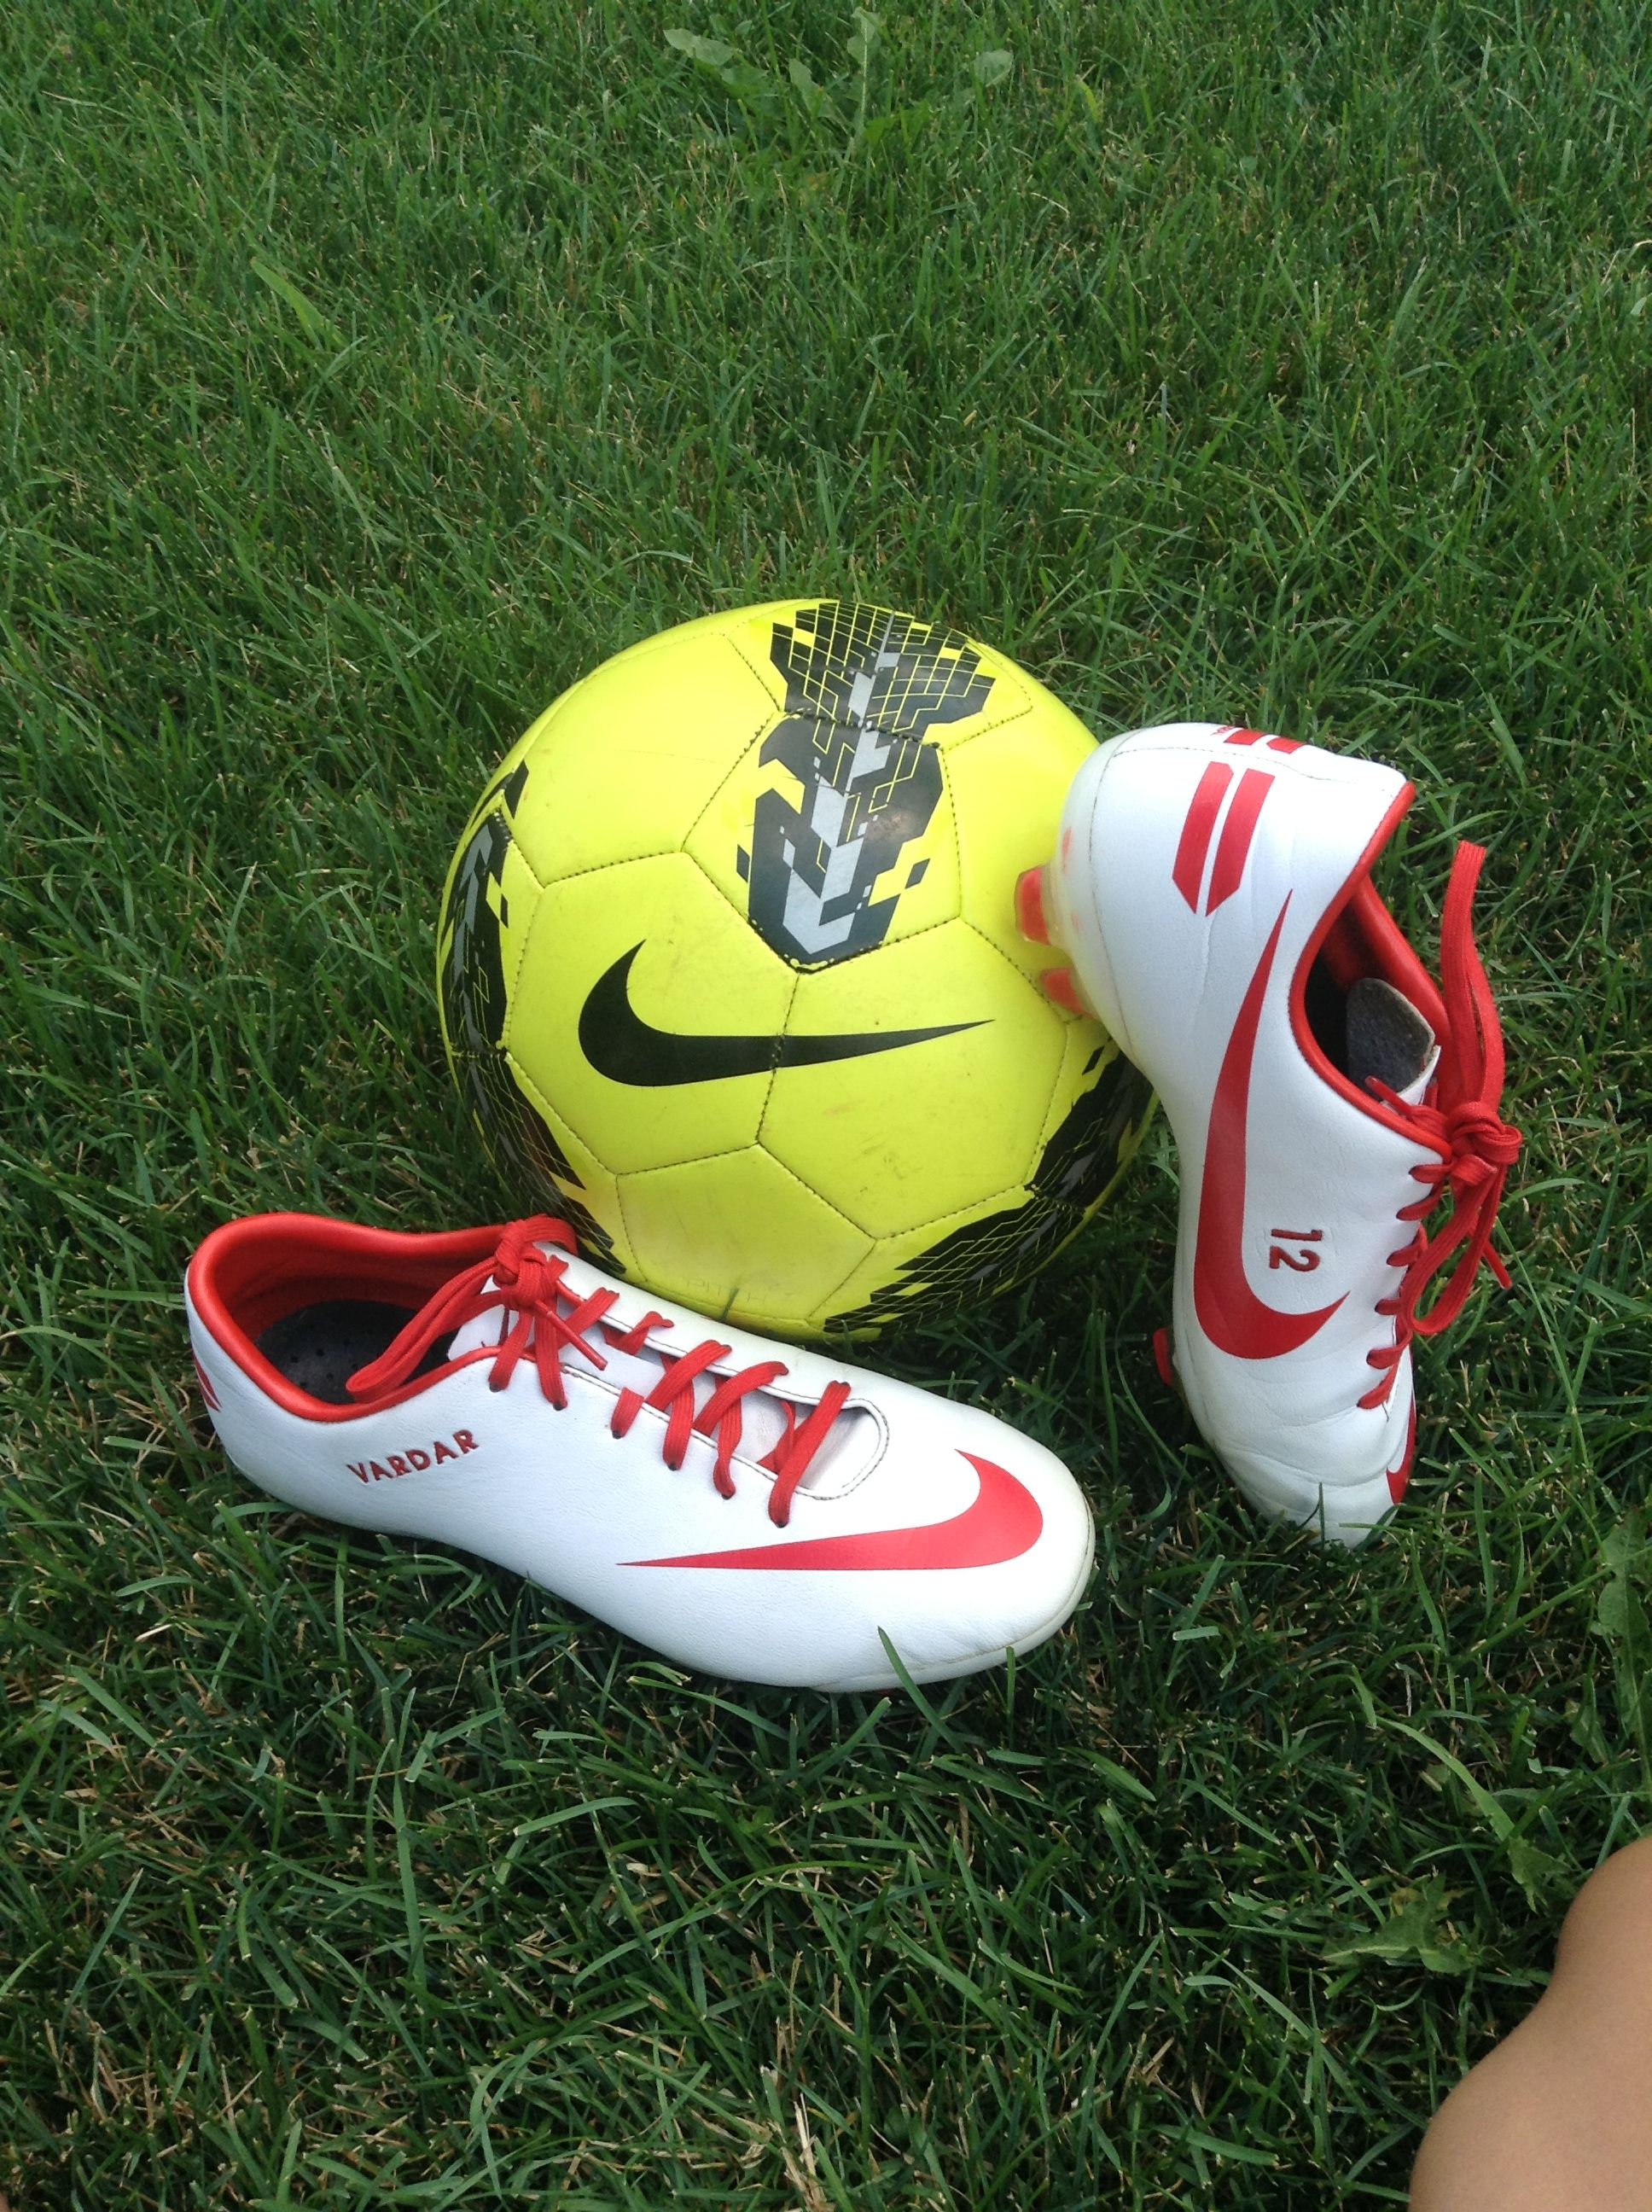 My custom made cleats nike shoes cleats sport shoes